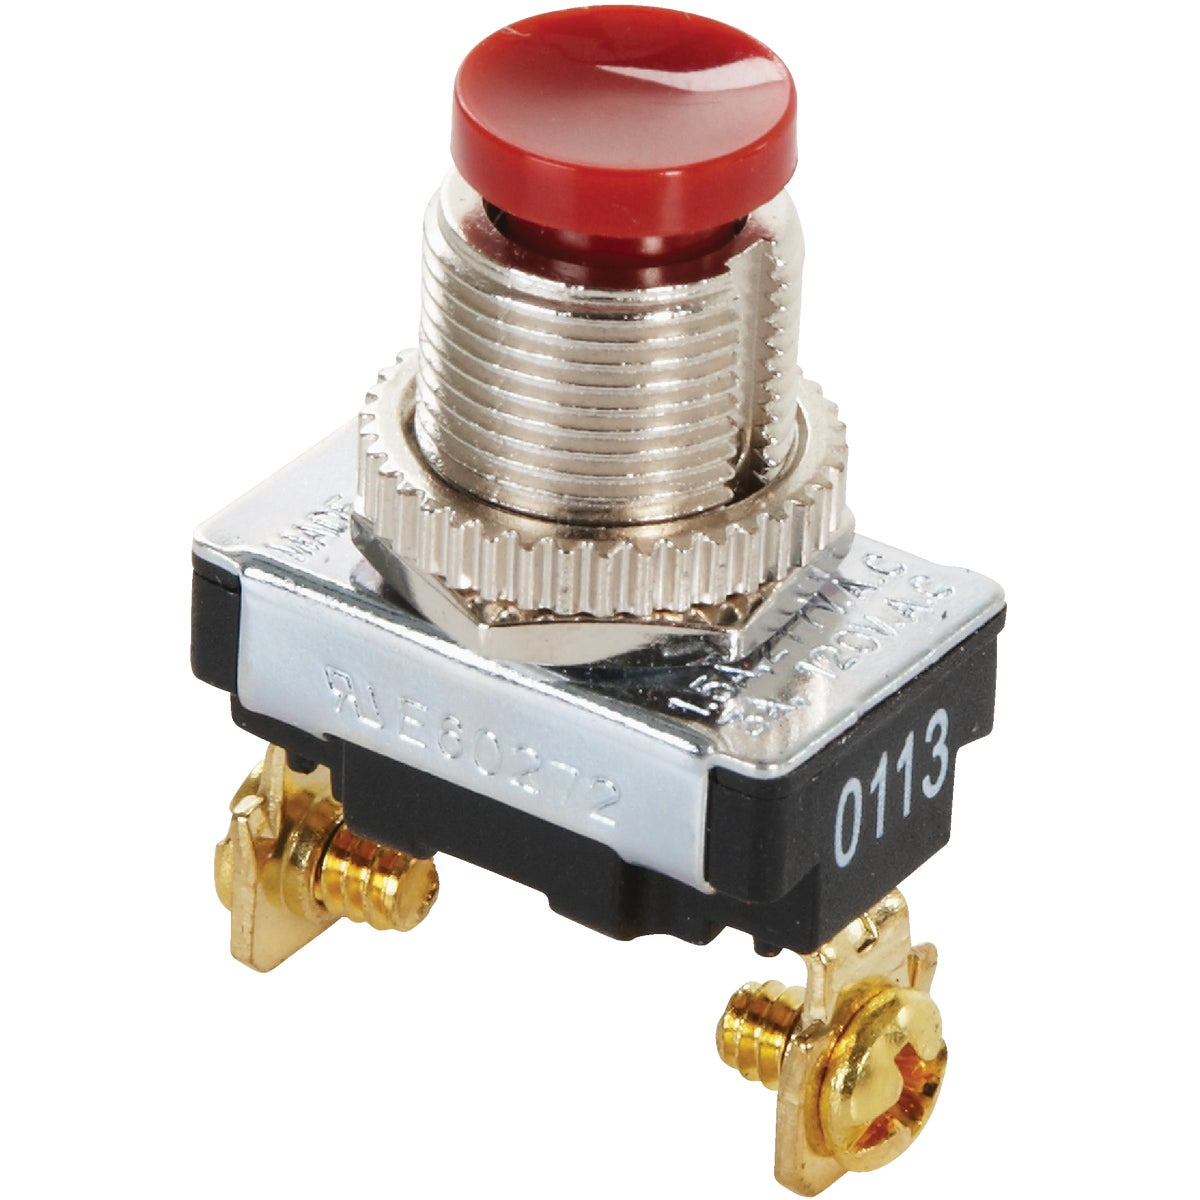 PUSH-BUTTON SWITCH - GSW-23 by G B Electrical Inc